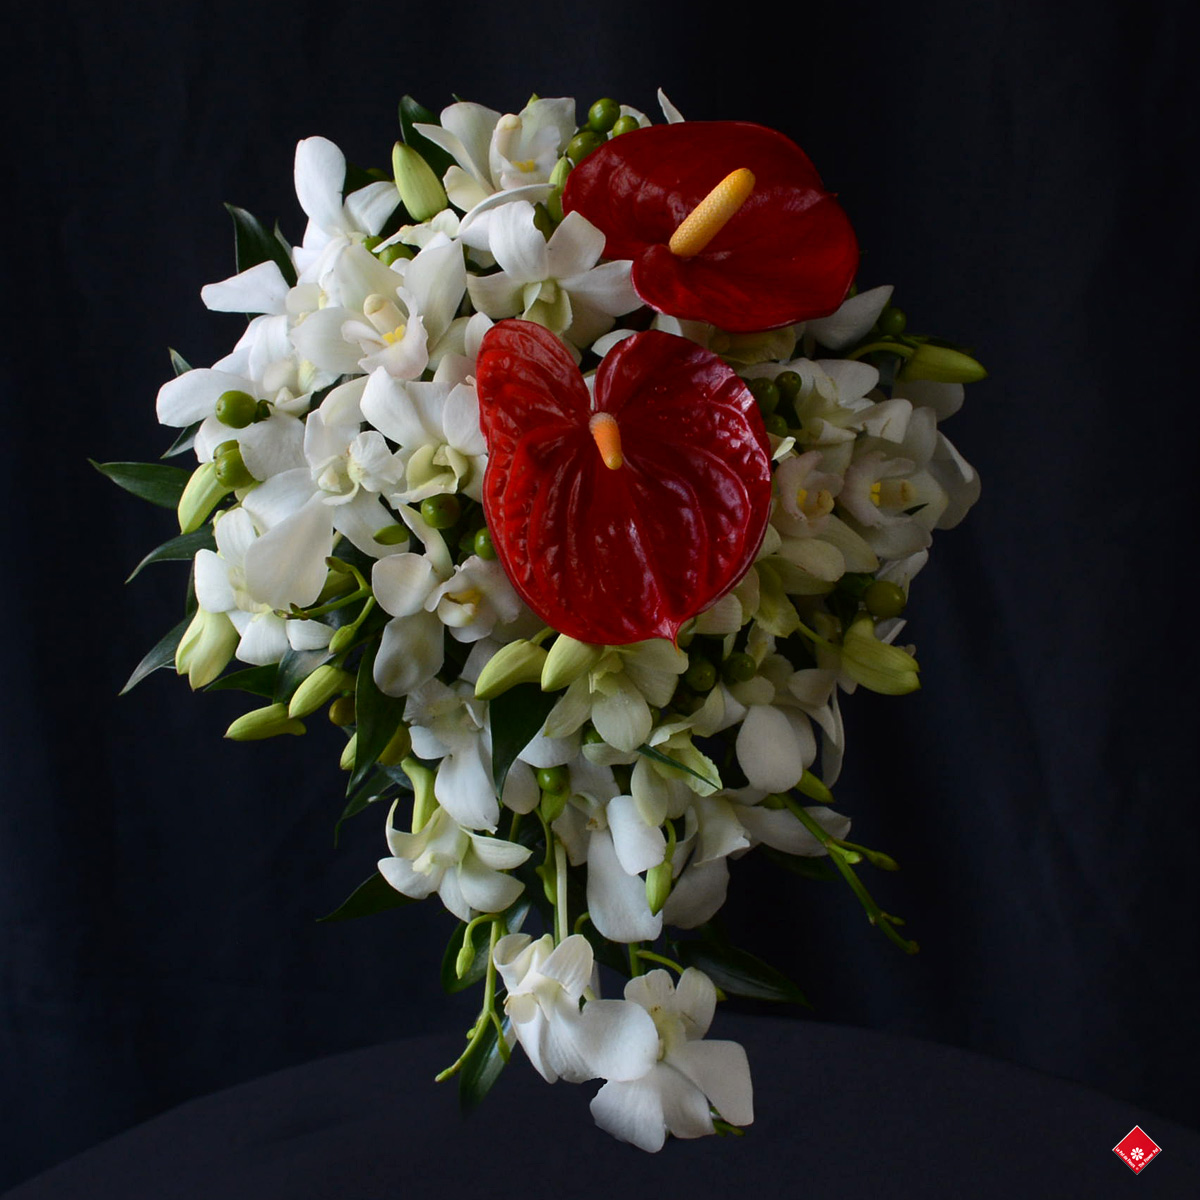 A beautiful red and white bouquet for the blushing bride.